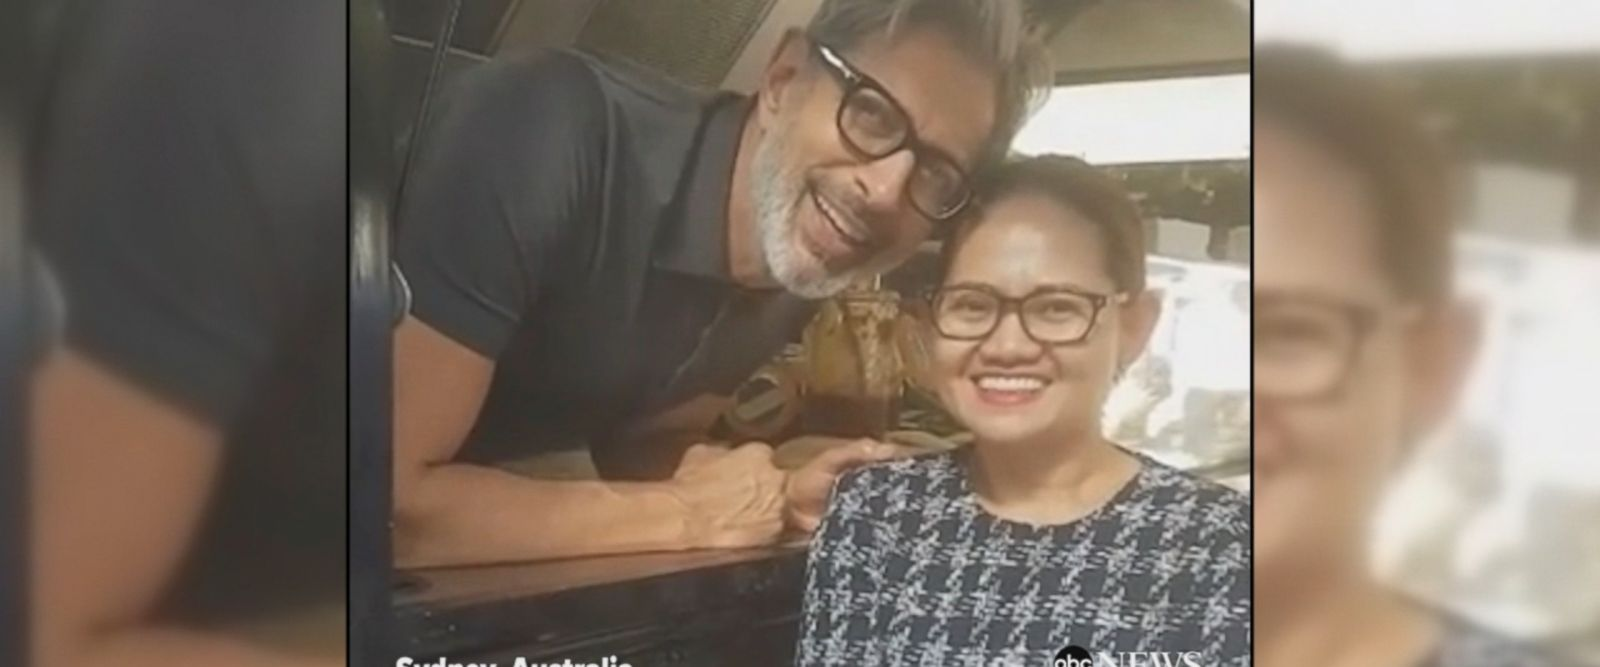 VIDEO: Jeff Goldblum surprised fans with his appearance inside a food truck in Sydney, Australia.